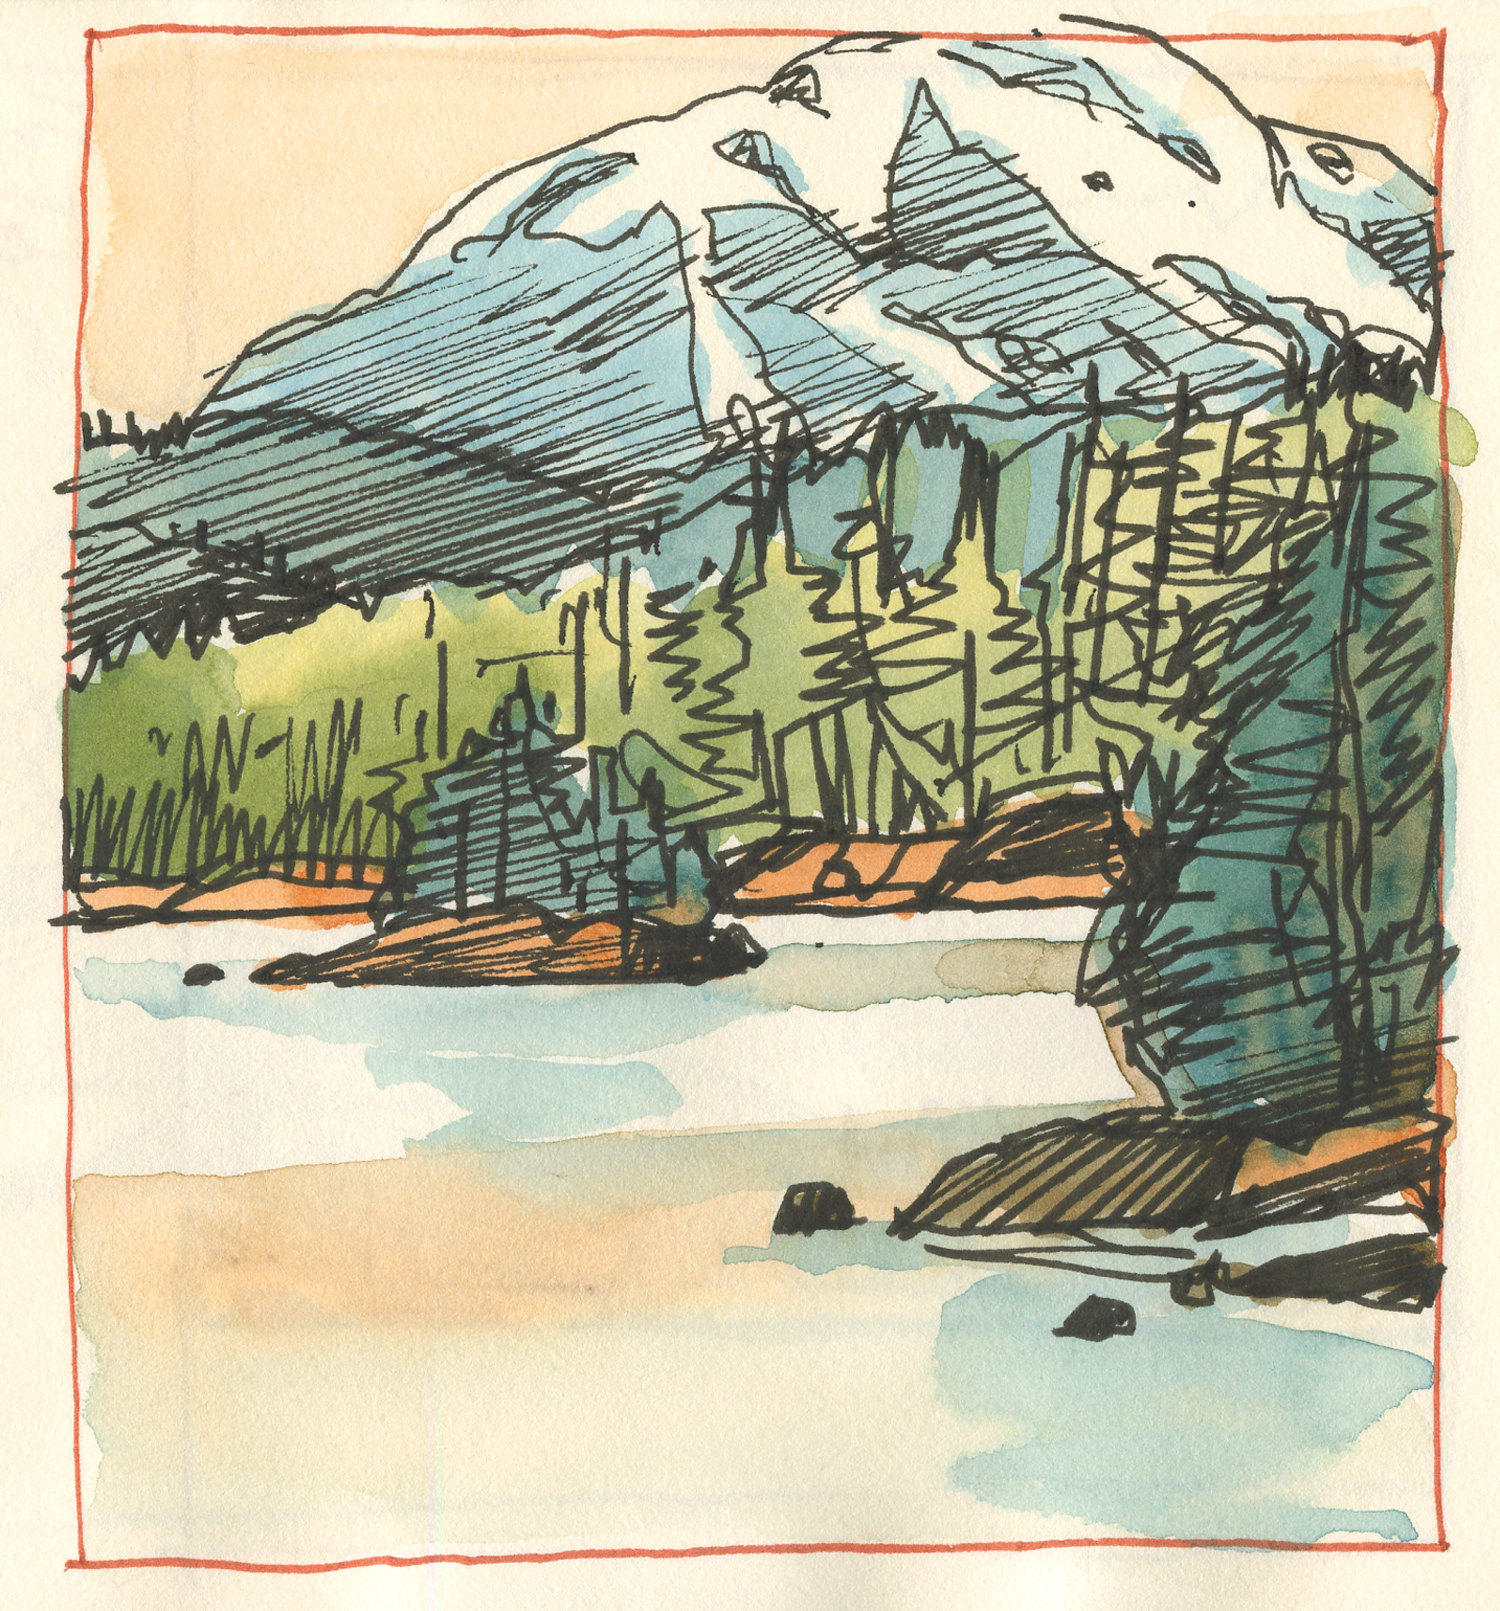 Alaska_sketchbook4_edited-1.jpg